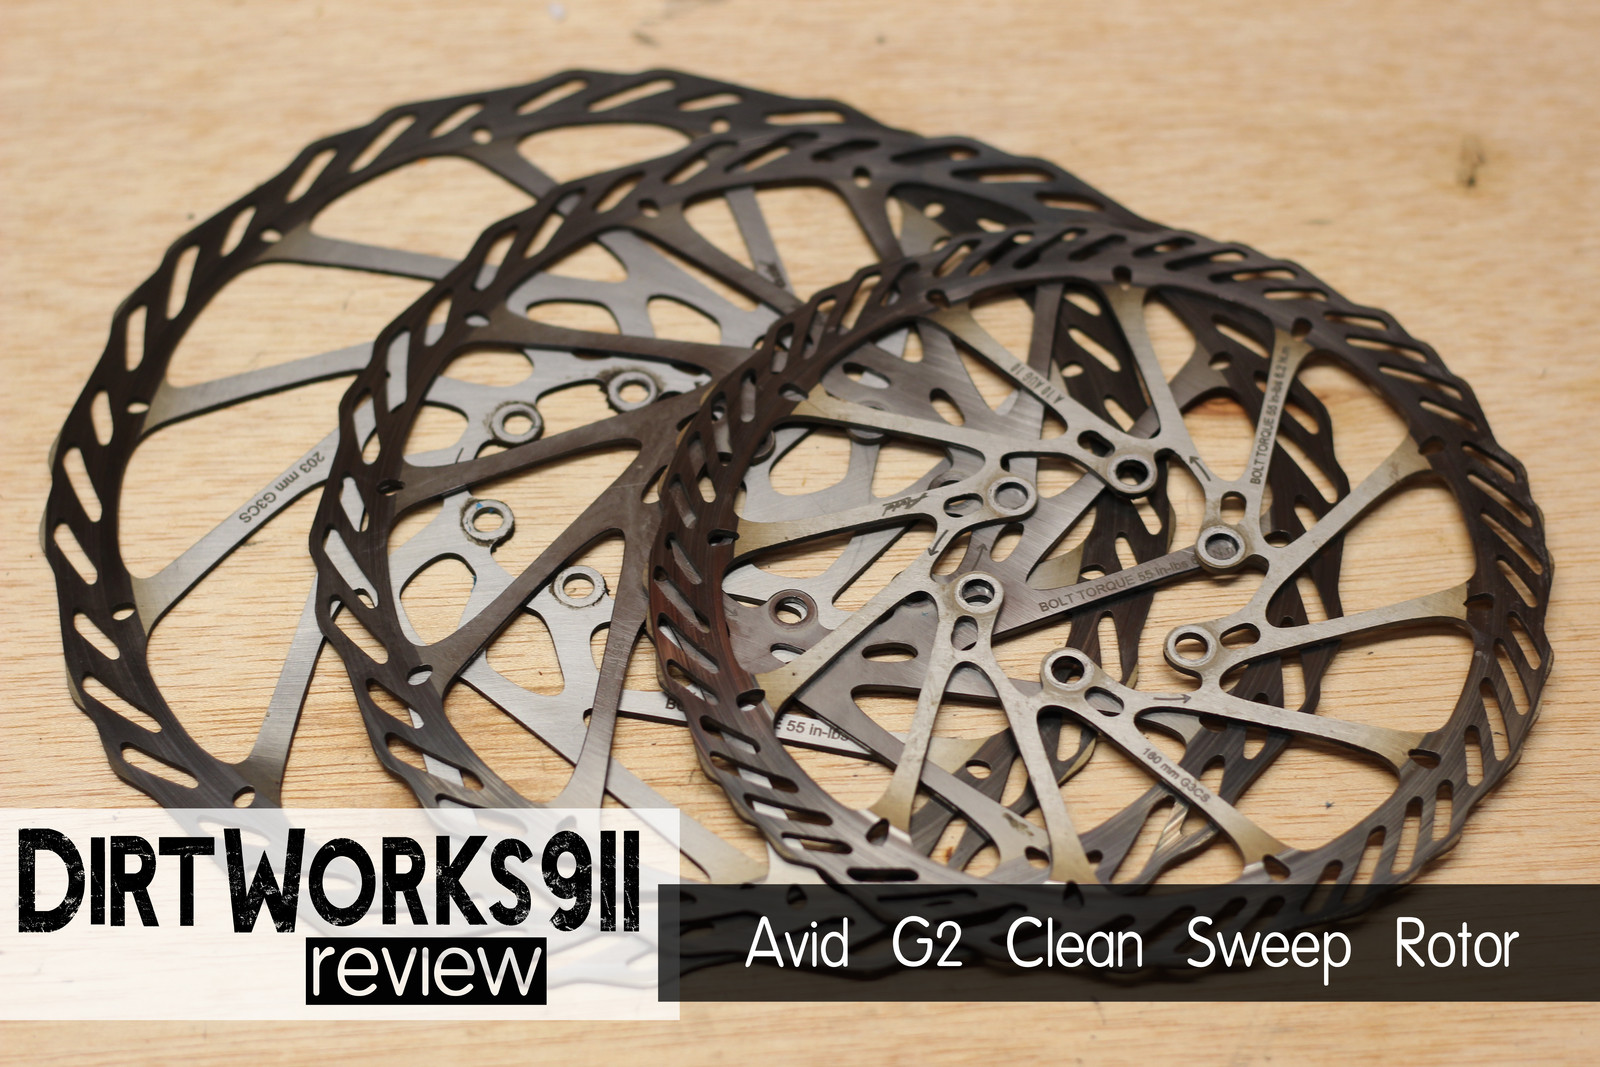 Avid G2 Clean Sweep Rotor - Reviews, Comparisons, Specs